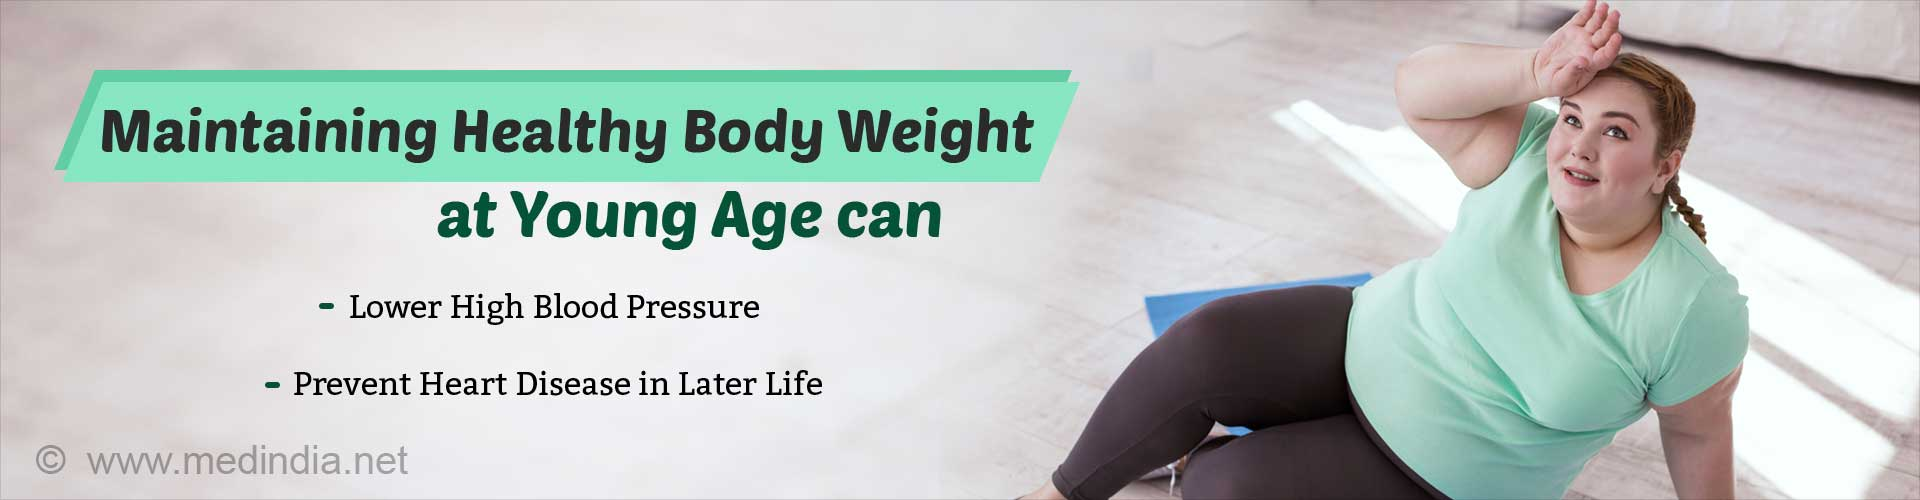 Maintaining healthy body weight at young age can lower high blood pressure, prevent heart disease in later life.